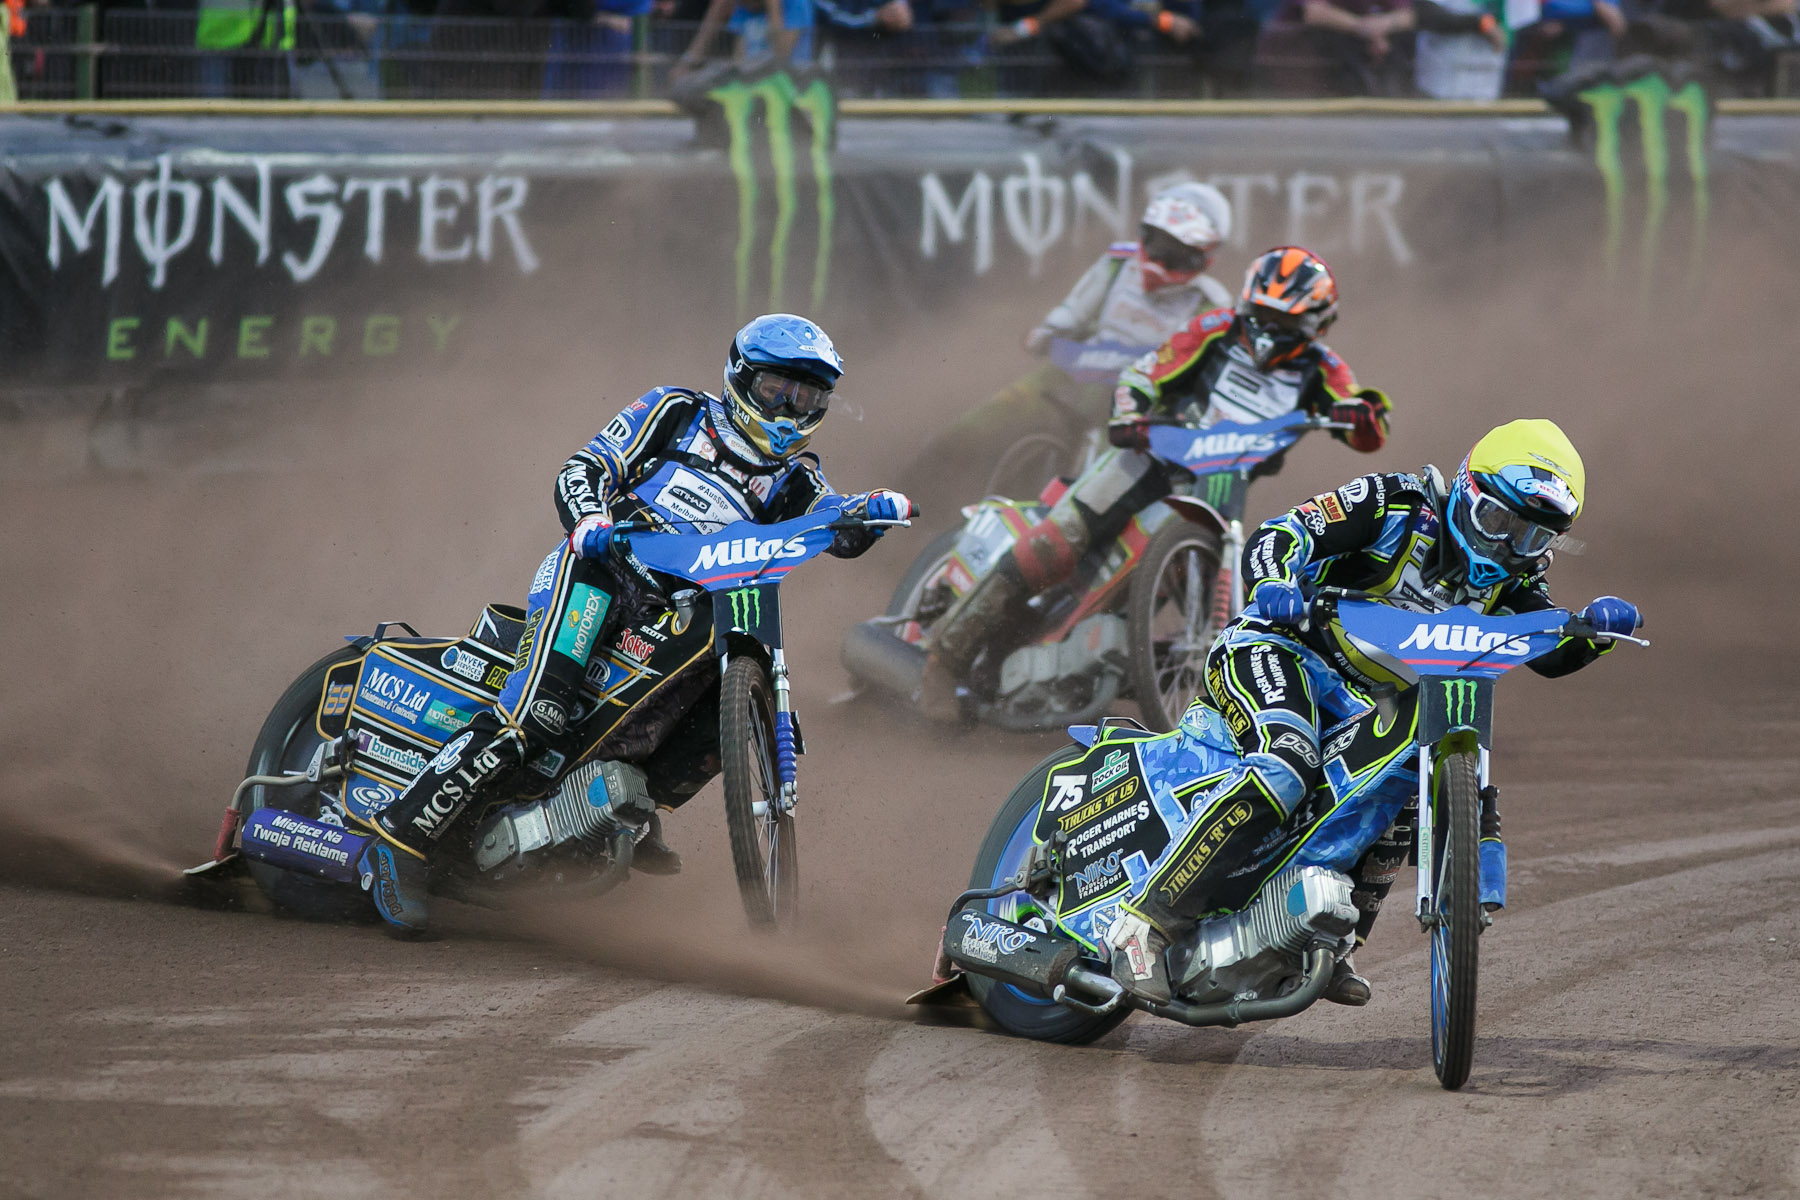 Troy Batchelor of Australia, Jason Doyle of Australia, Andreas Jonsson of Sweden and Aleksander Conda of Slovenia compete in the Mitas Slovenian FIM Speedway Grand Prix at Matija Gubec Stadium in Krsko, Slovenia, Sep. 12, 2015.